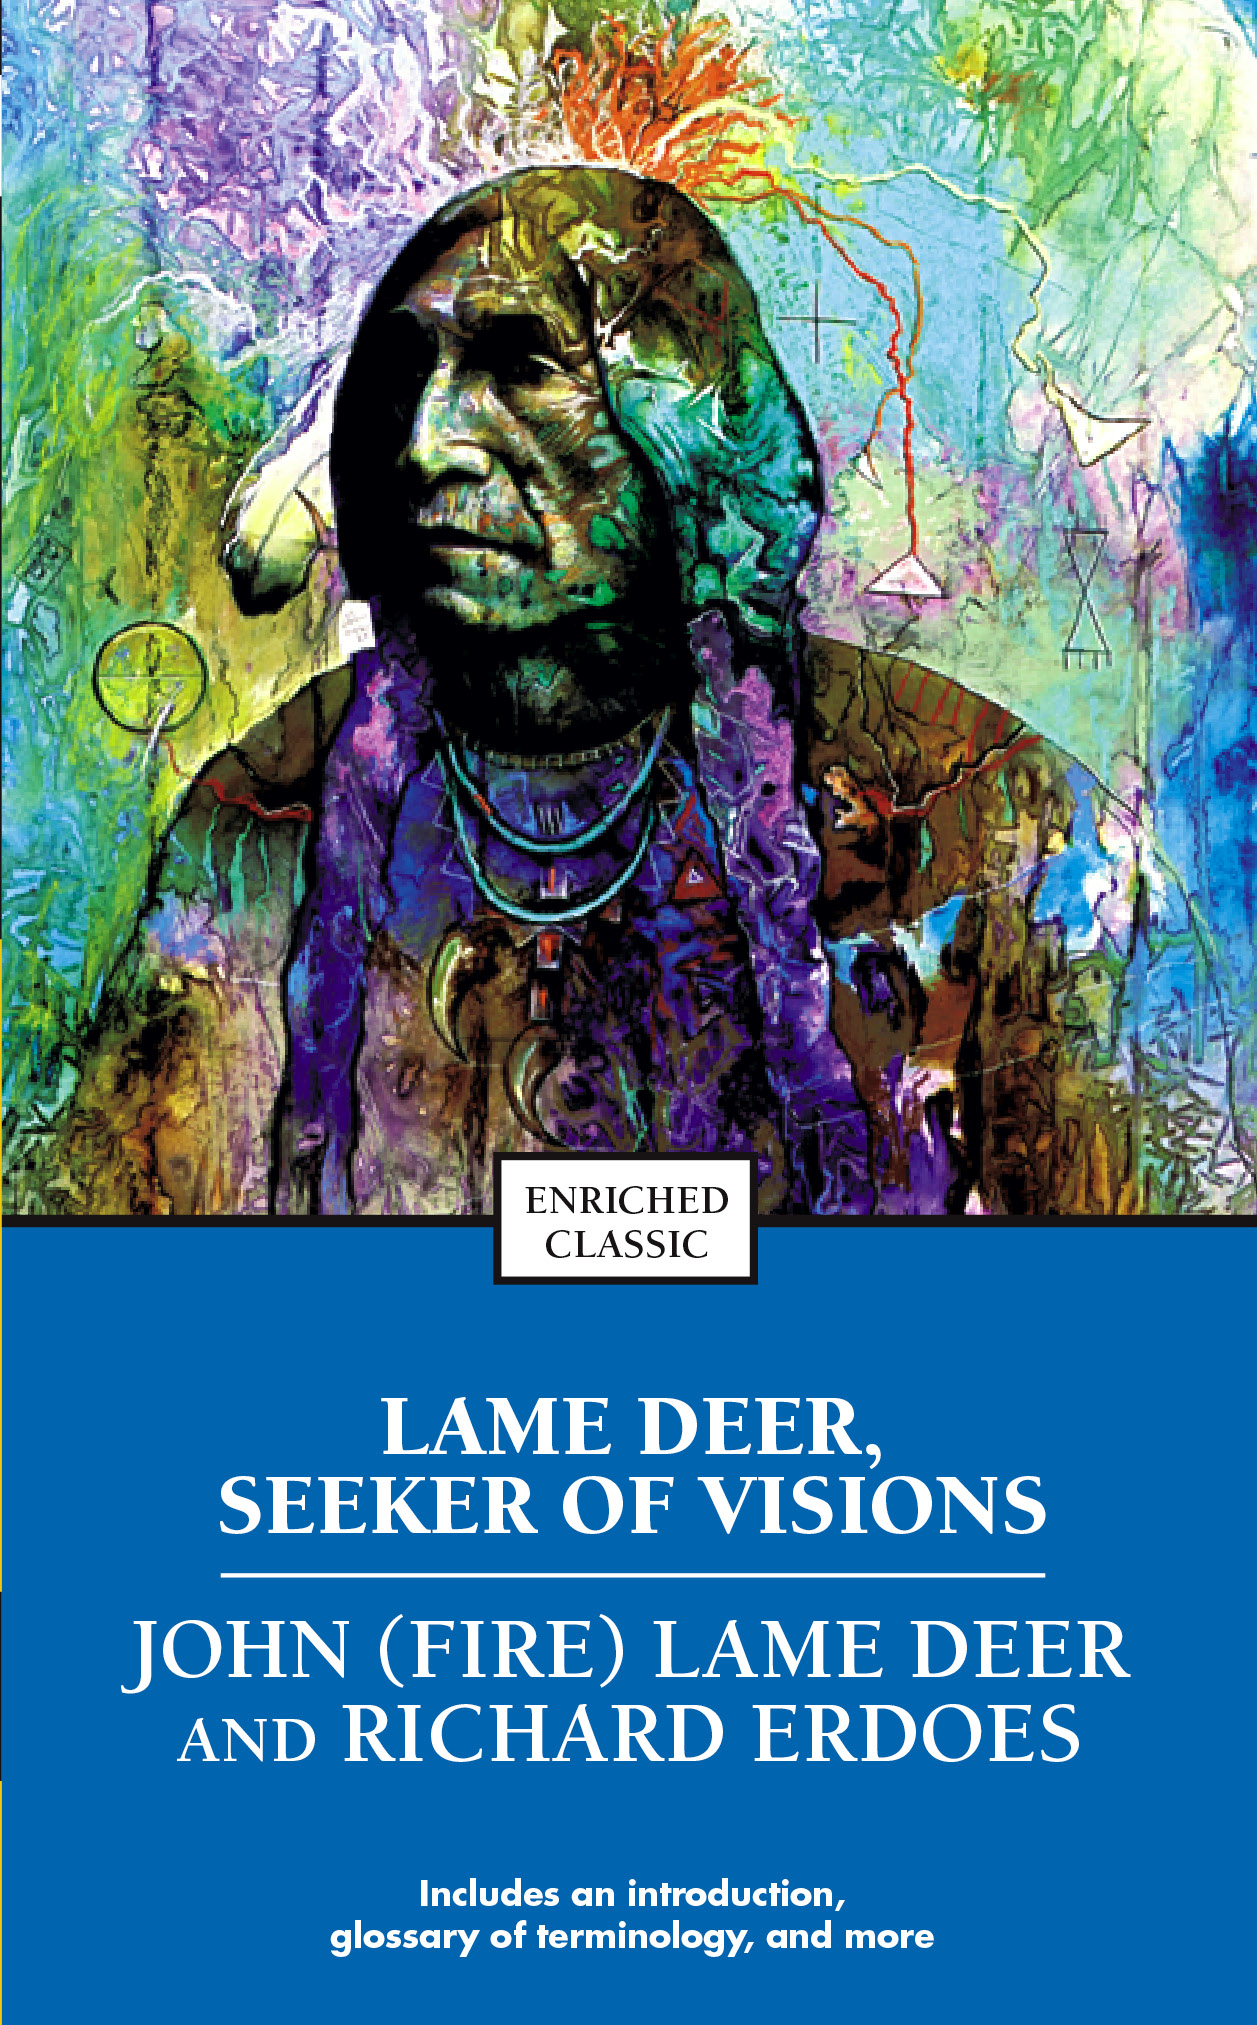 lame deer seekers of vision Yuwipi: vision and experience in oglala ritual by william k powers $1495 op2 beyond the vision: essays on american indian culture by william k powers $5500 op4 lame deer seeker of visions by john fire and richard erdoes $1895 op12.